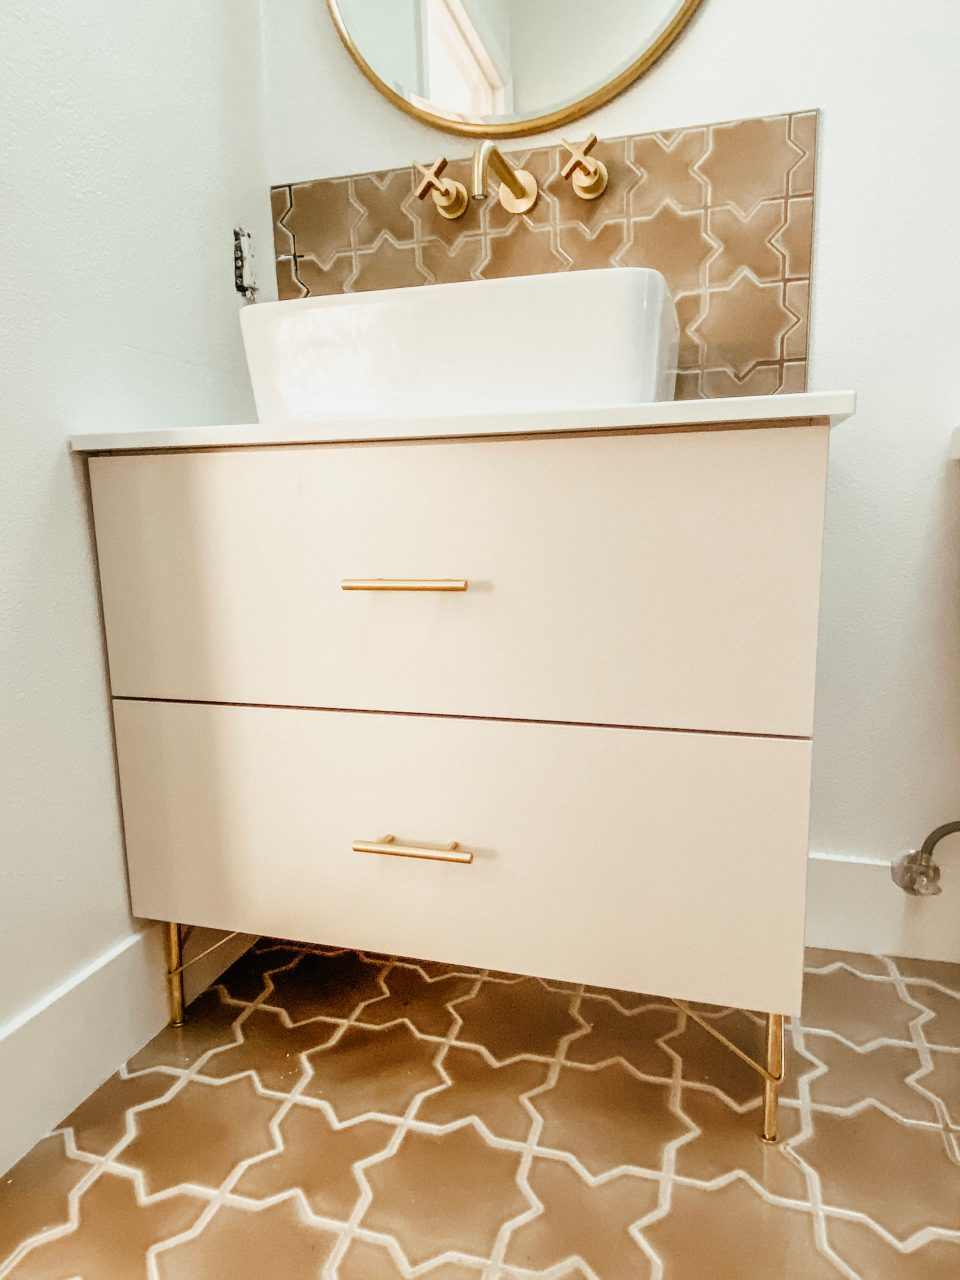 A close up of the in-progress vanity, with vessel sink settled on top, but not yet installed